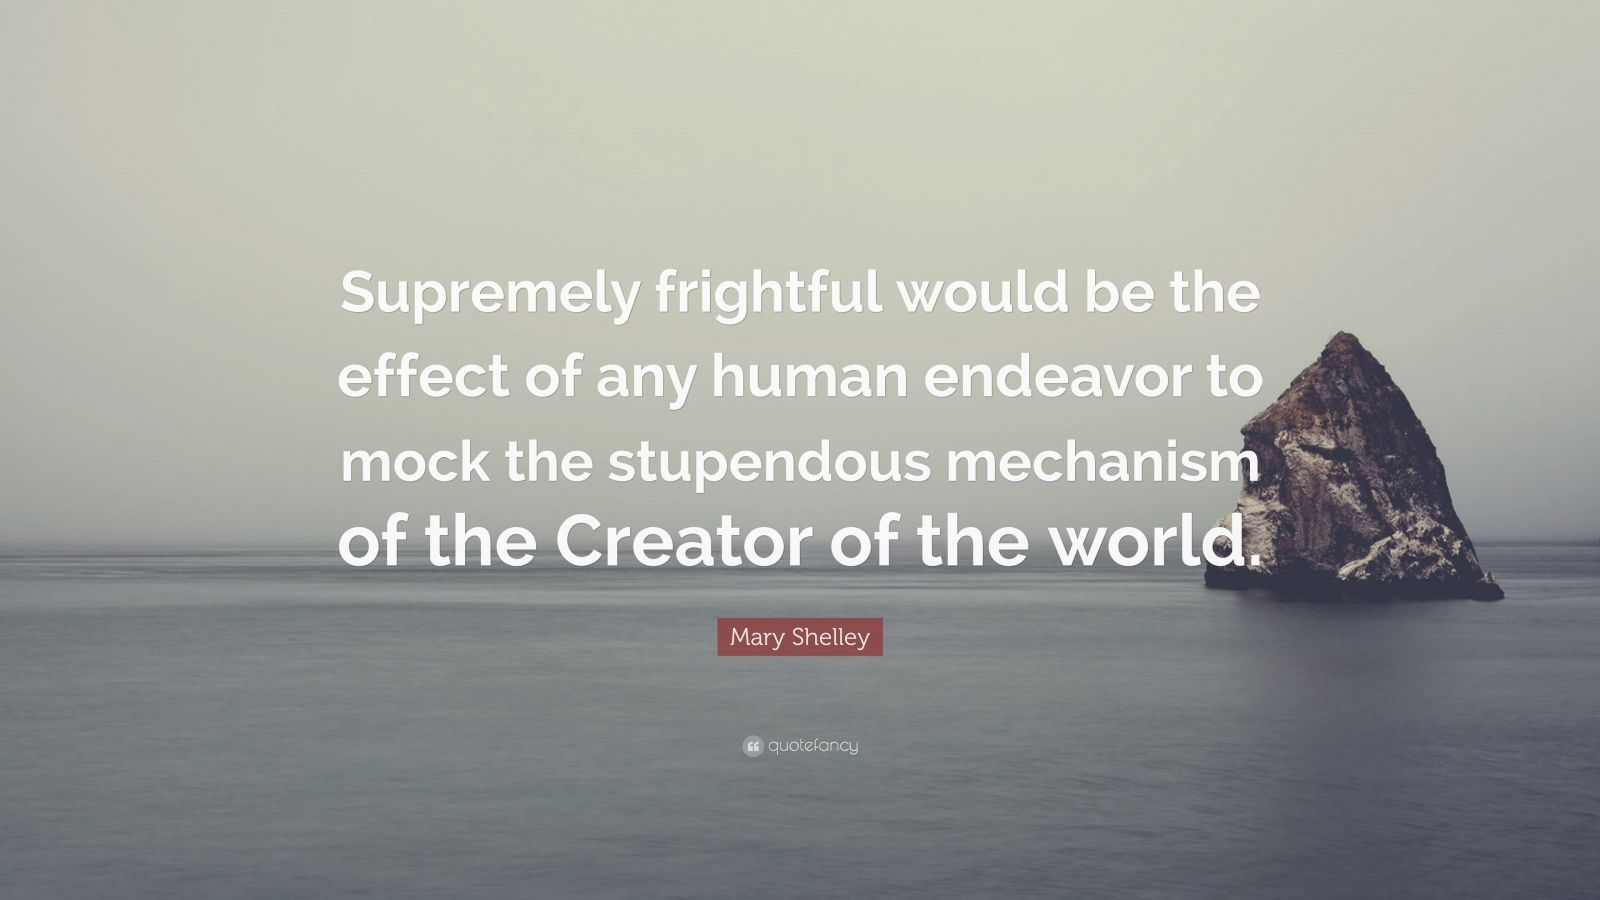 """Mary Shelley Quote: """"Supremely frightful would be the effect of any human endeavor to mock the stupendous mechanism of the Creator of the world."""""""